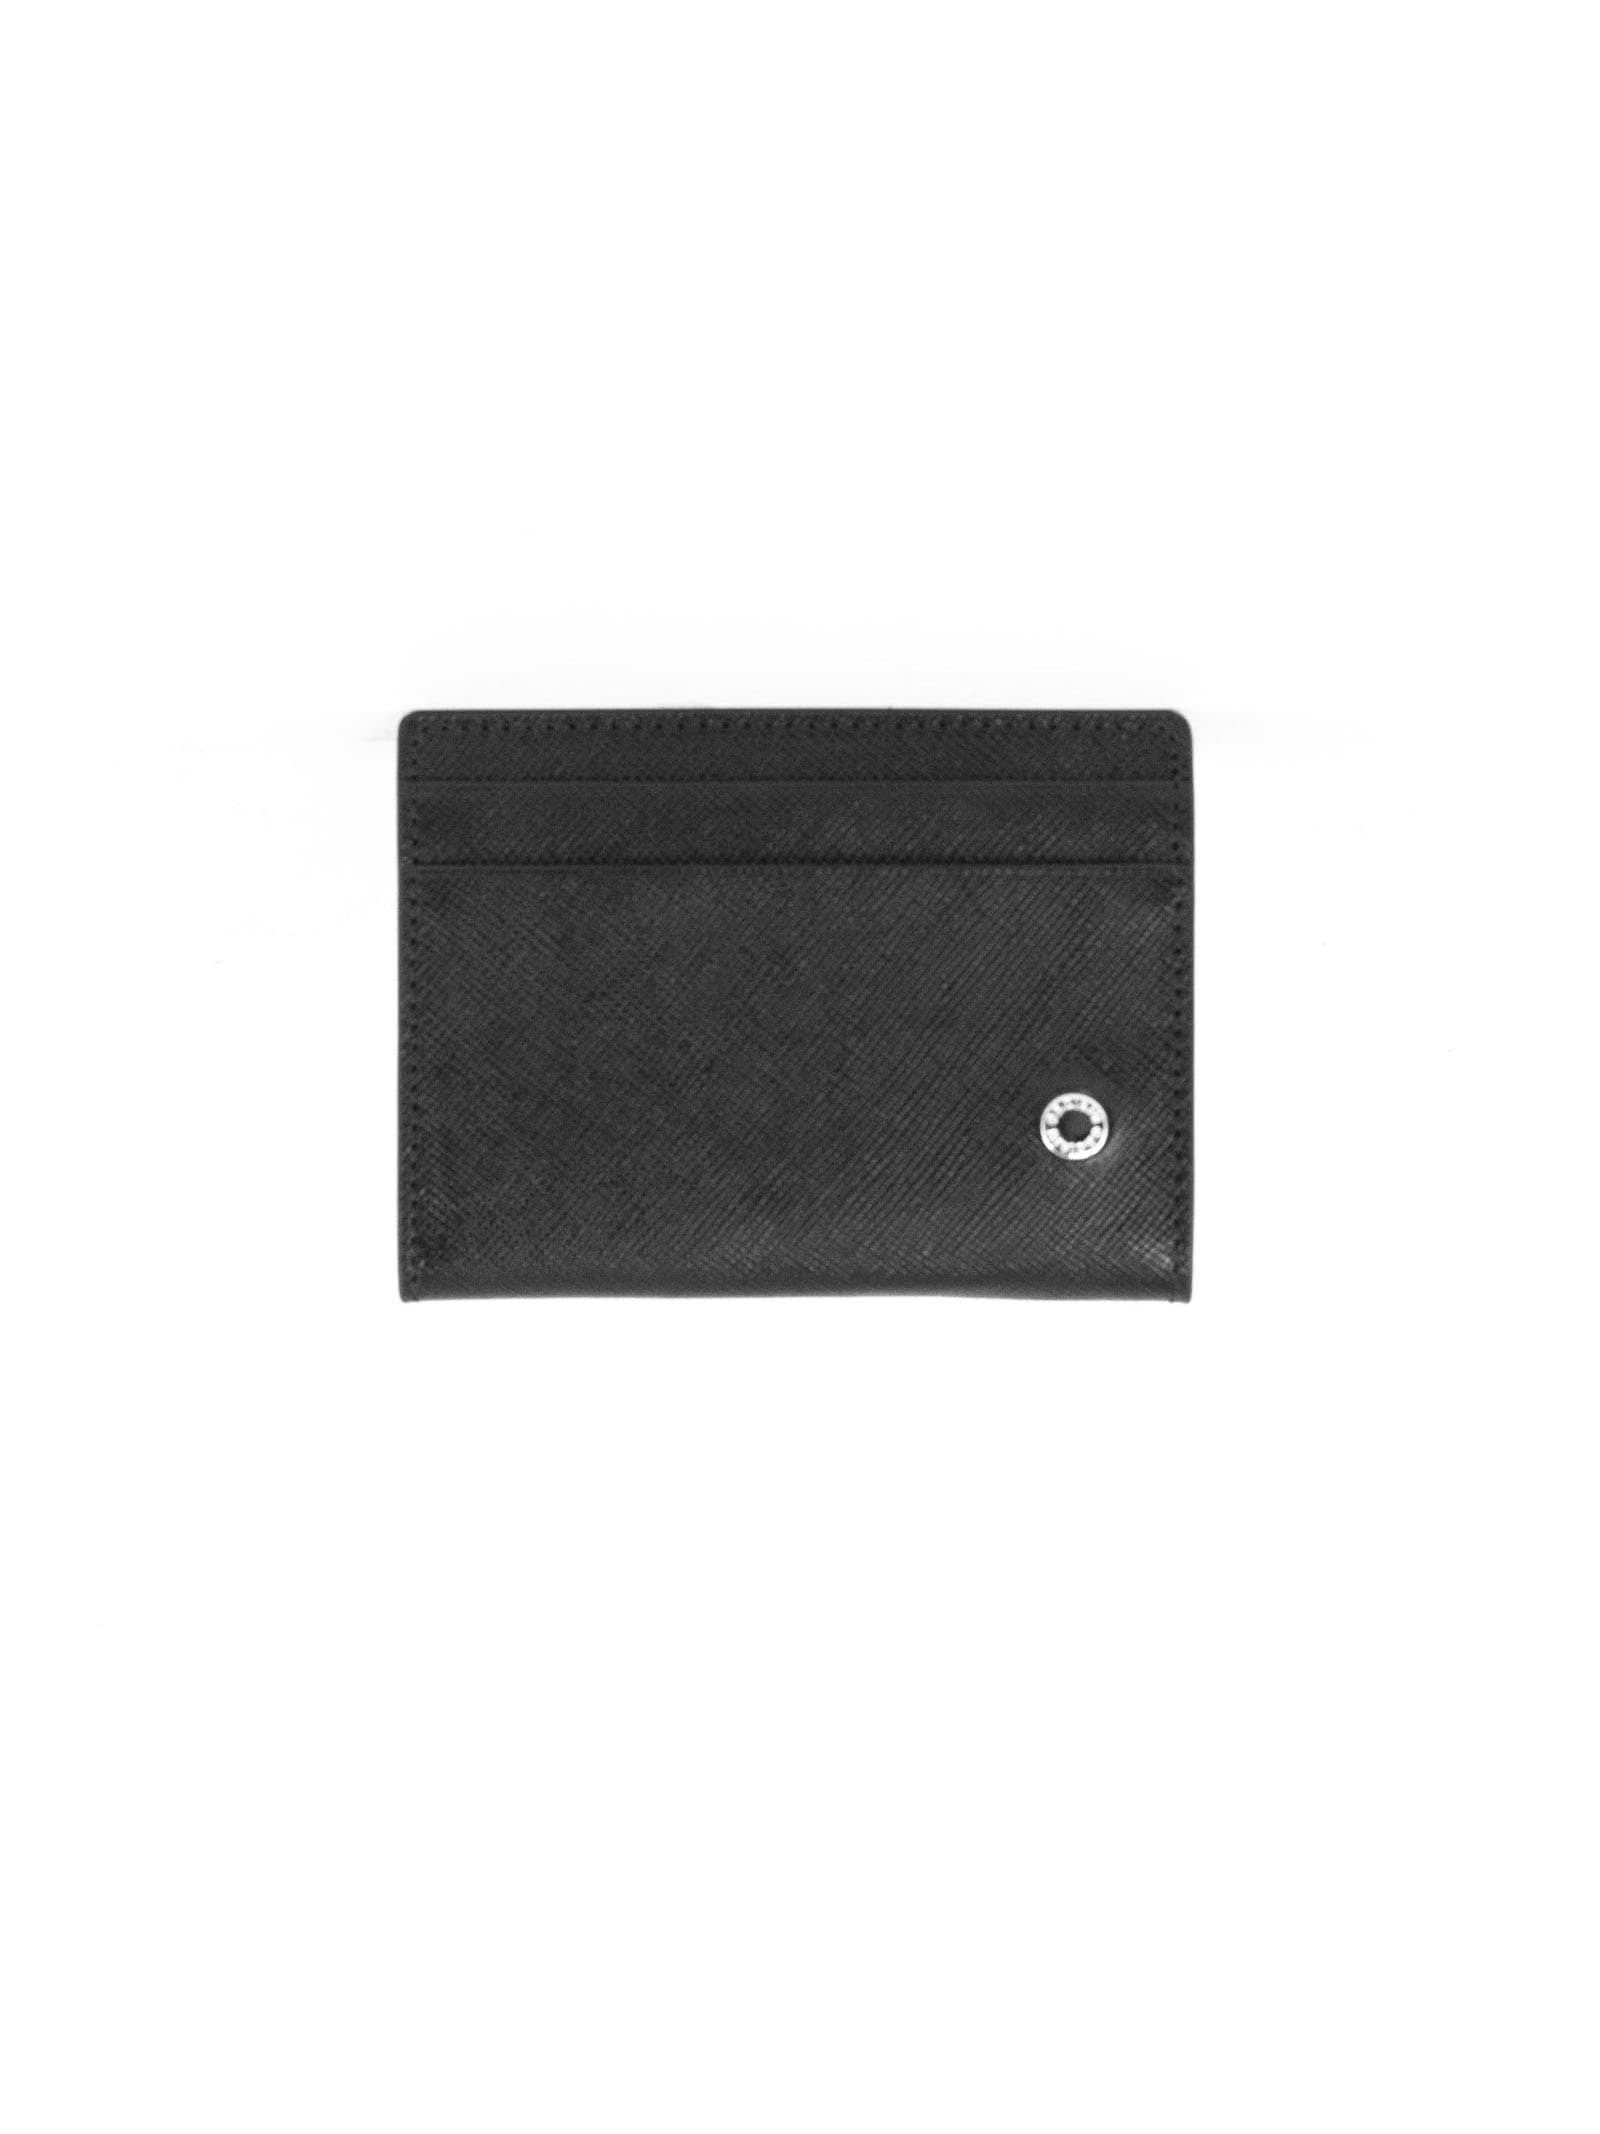 Orciani Black Leather Card Holder